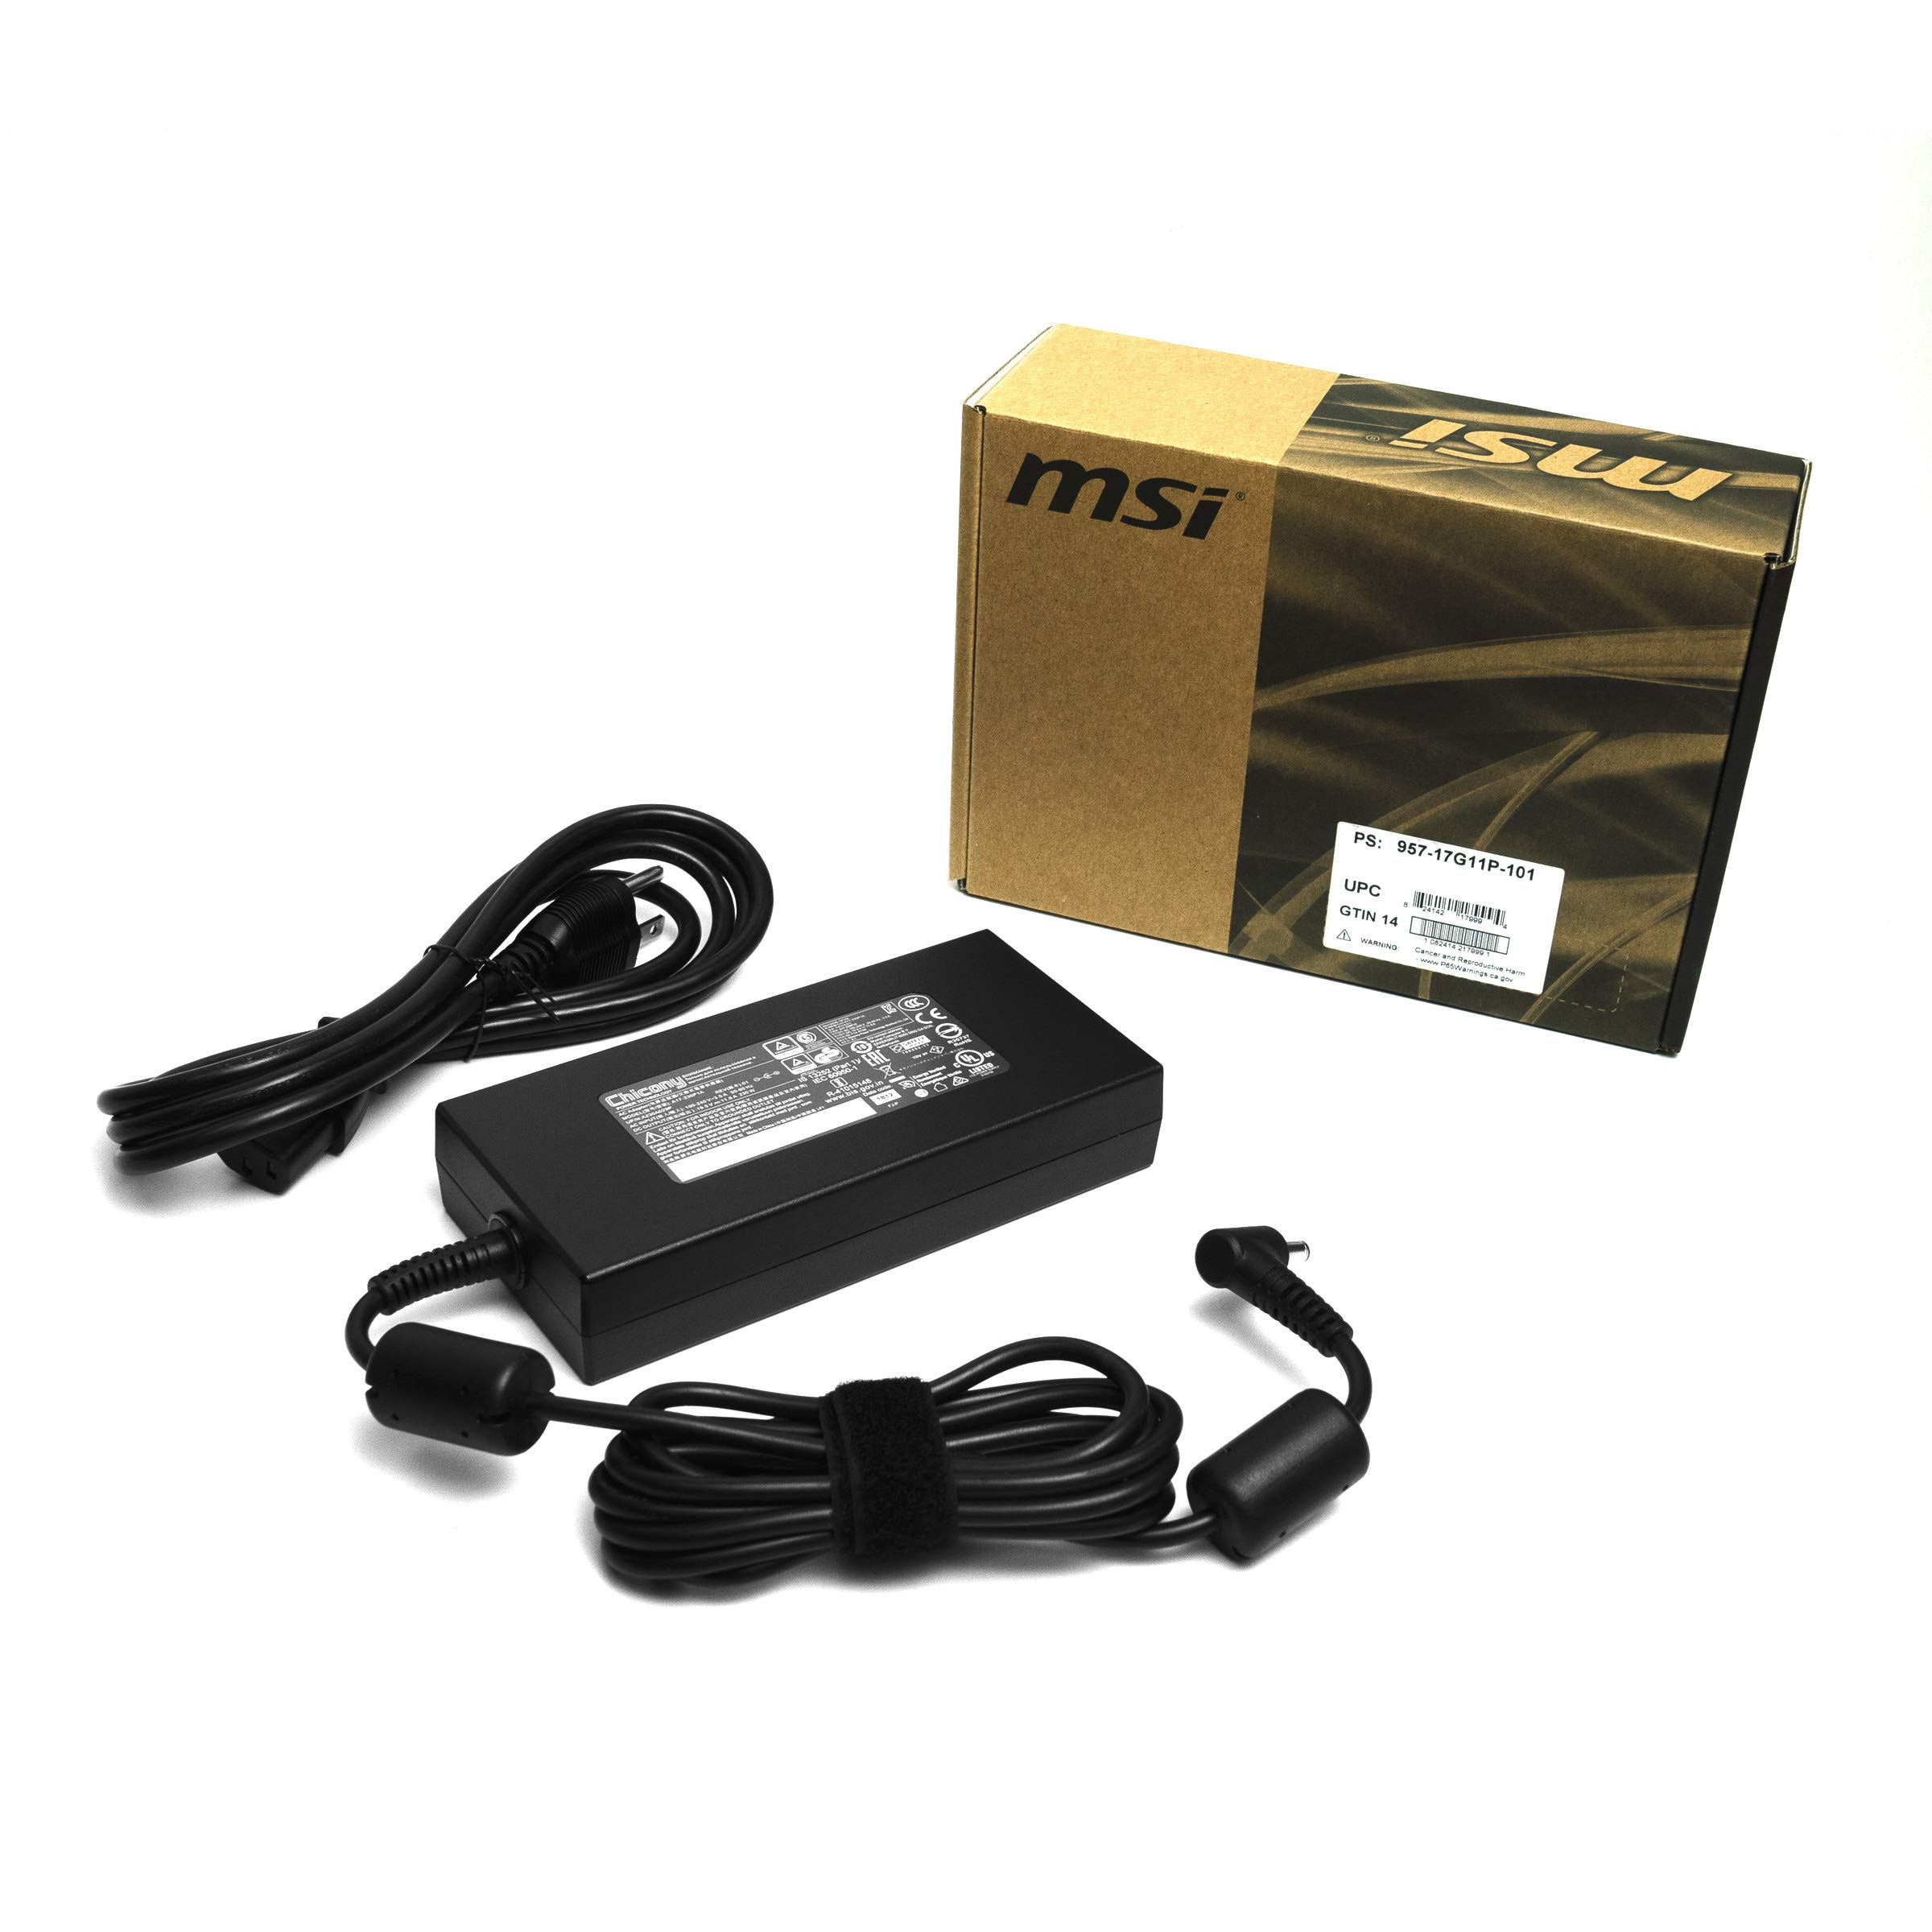 Genuine 230W AC/DC Power Adapter (957-17G11P-101) for MSI GS65/GS75 with RTX2070/RTX2080 Laptops by MSI (Image #1)